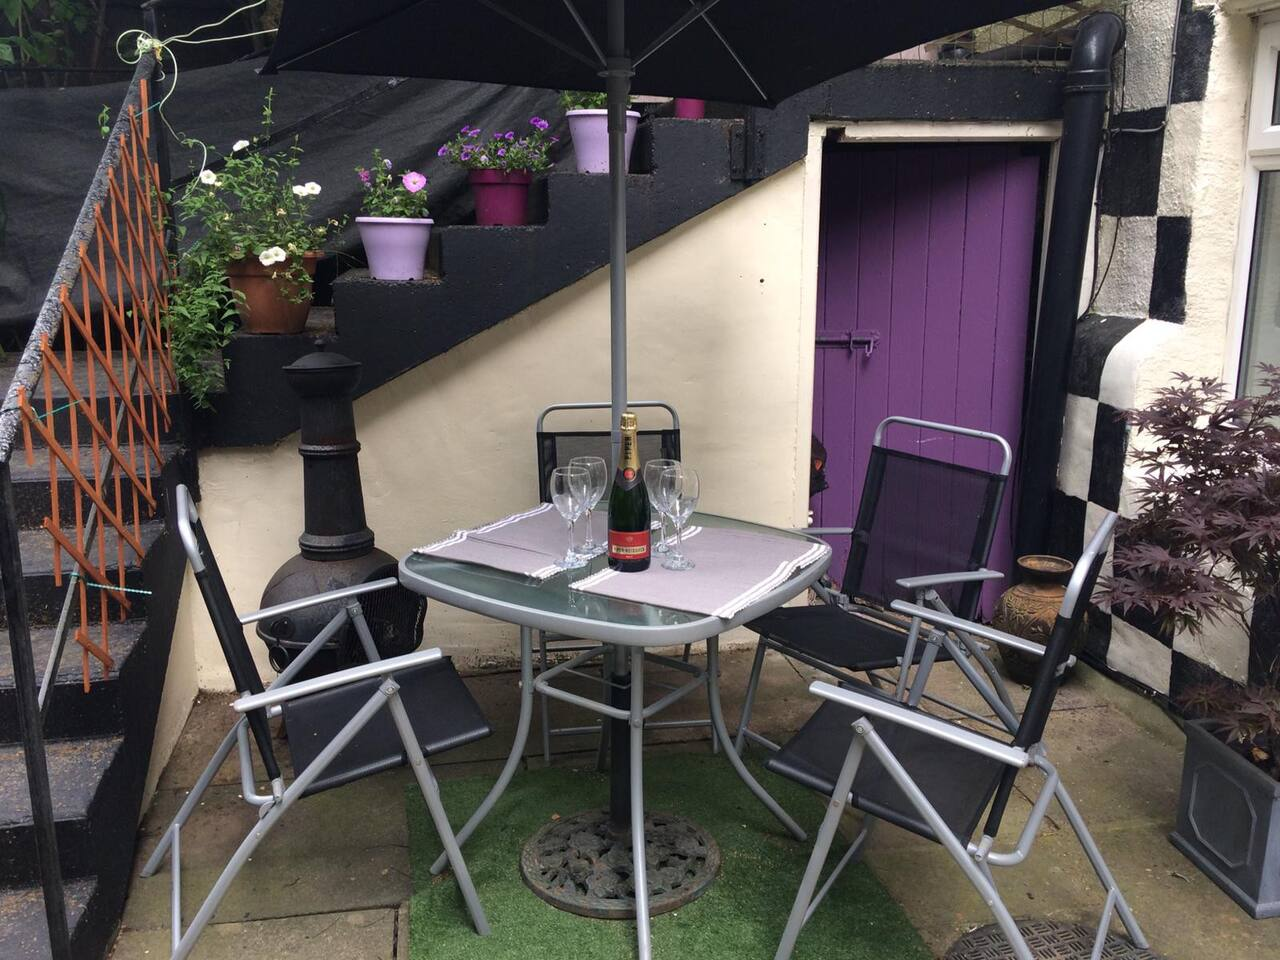 Relax on the patio, enjoying a few drinks and maybe a BBQ?